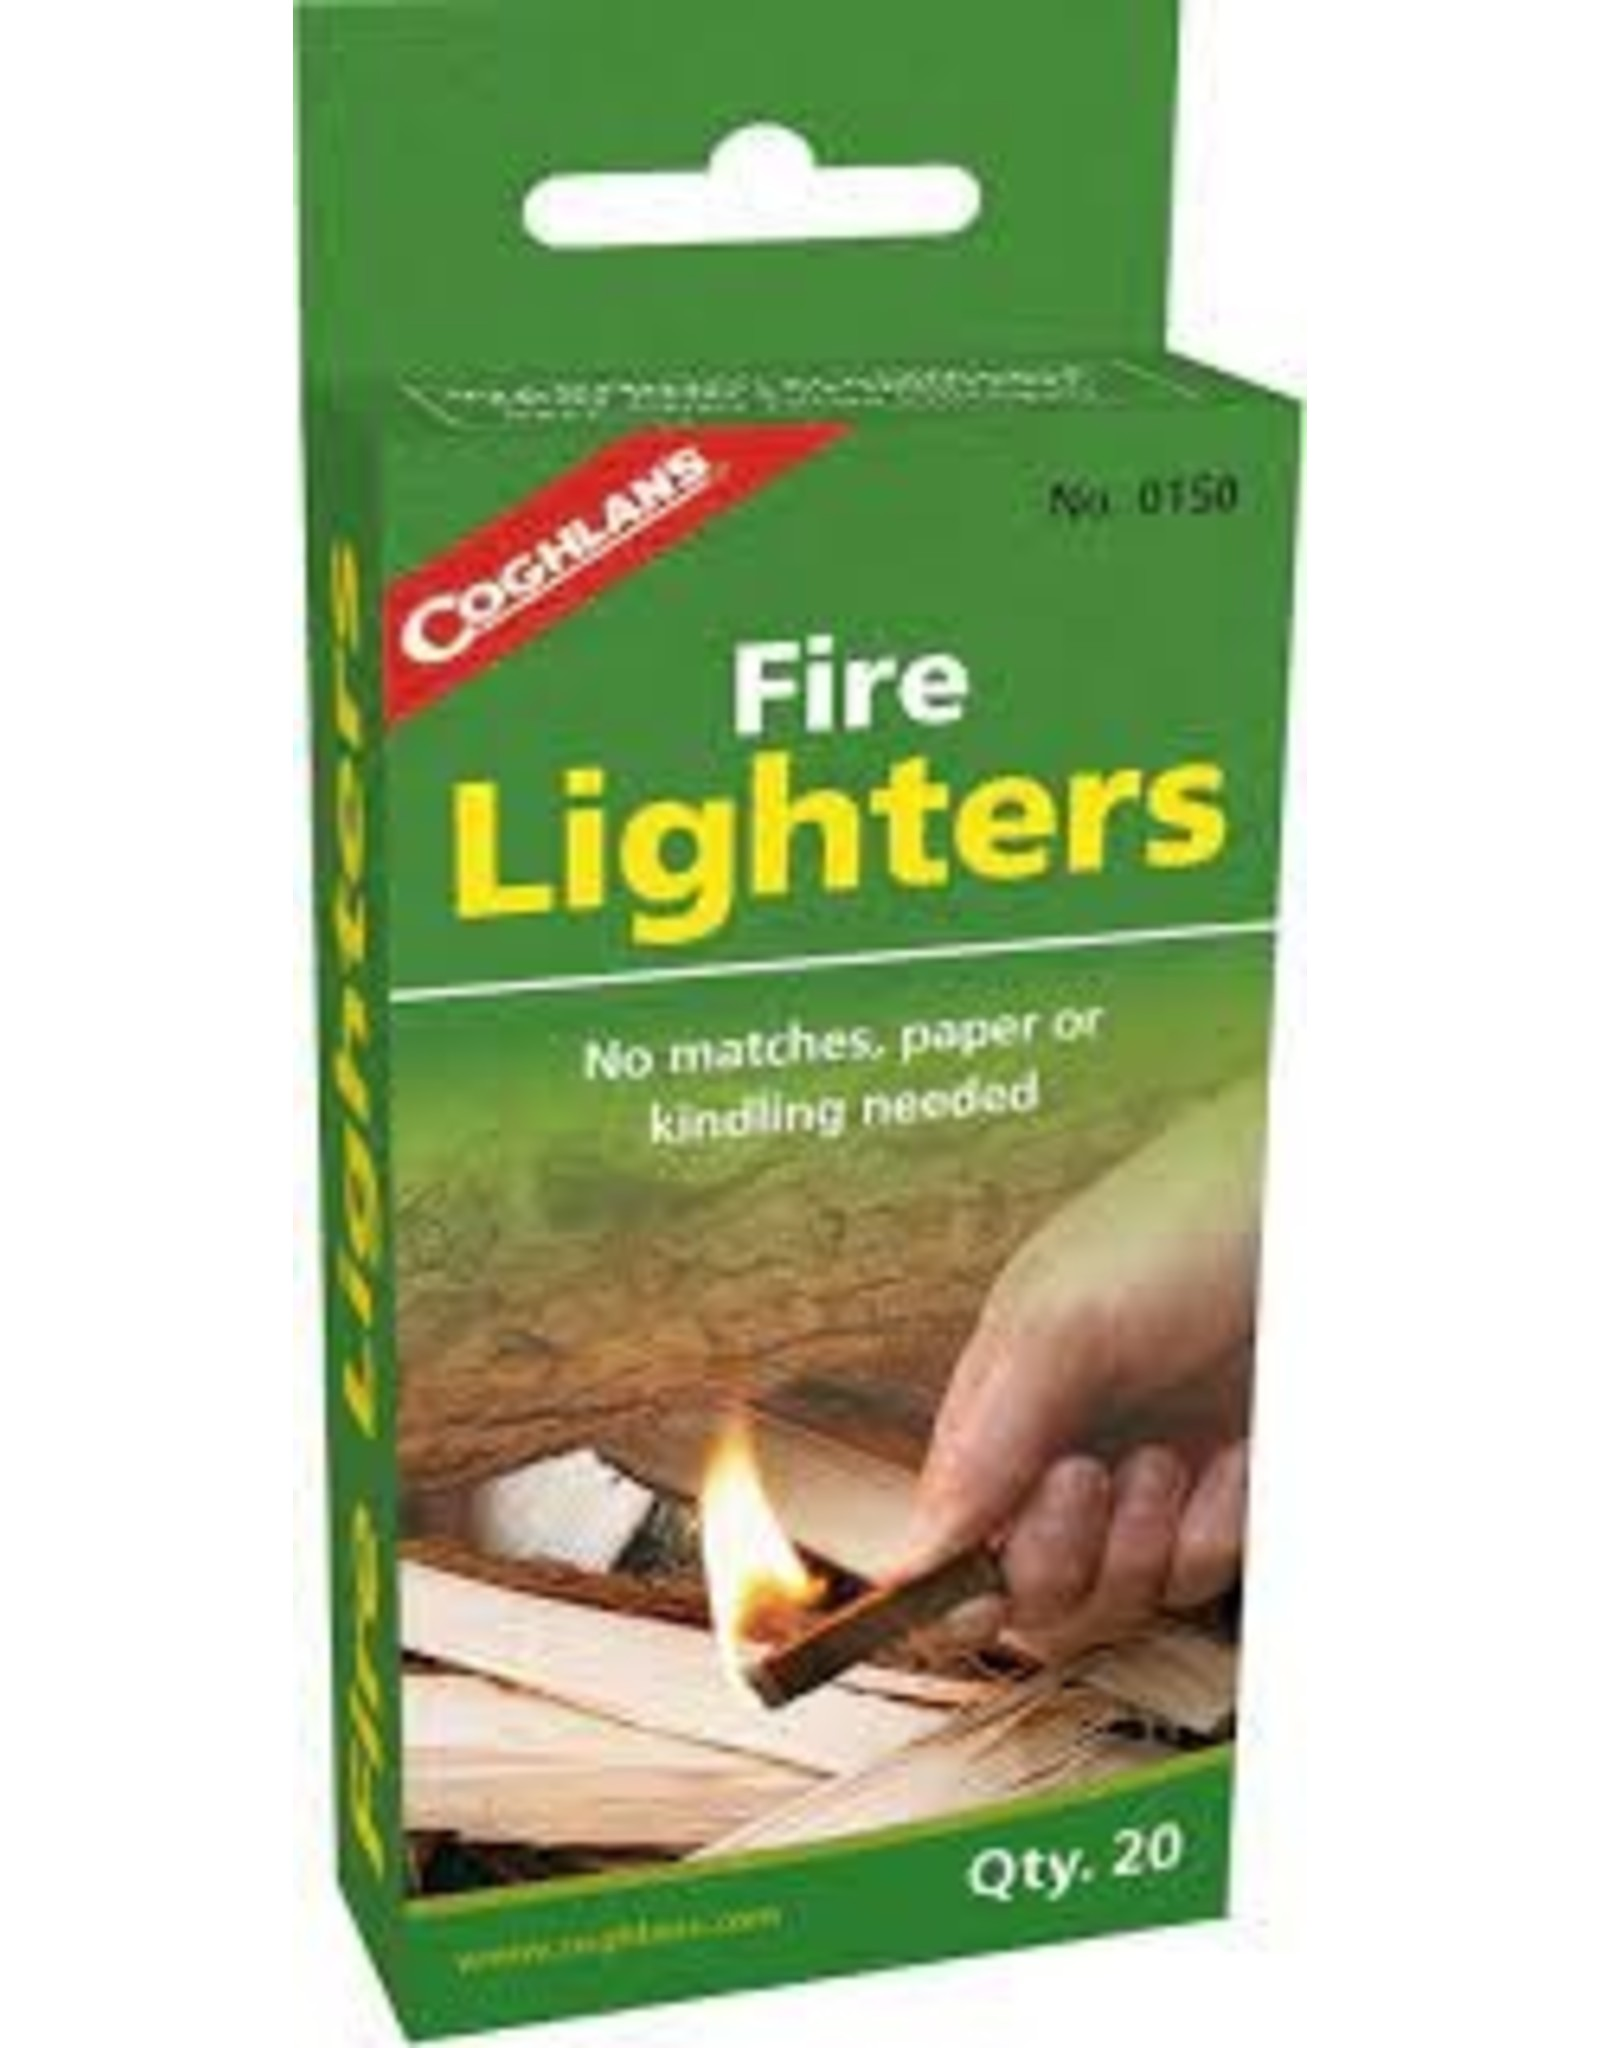 Coghlan's Coghlan's Fire Lighters